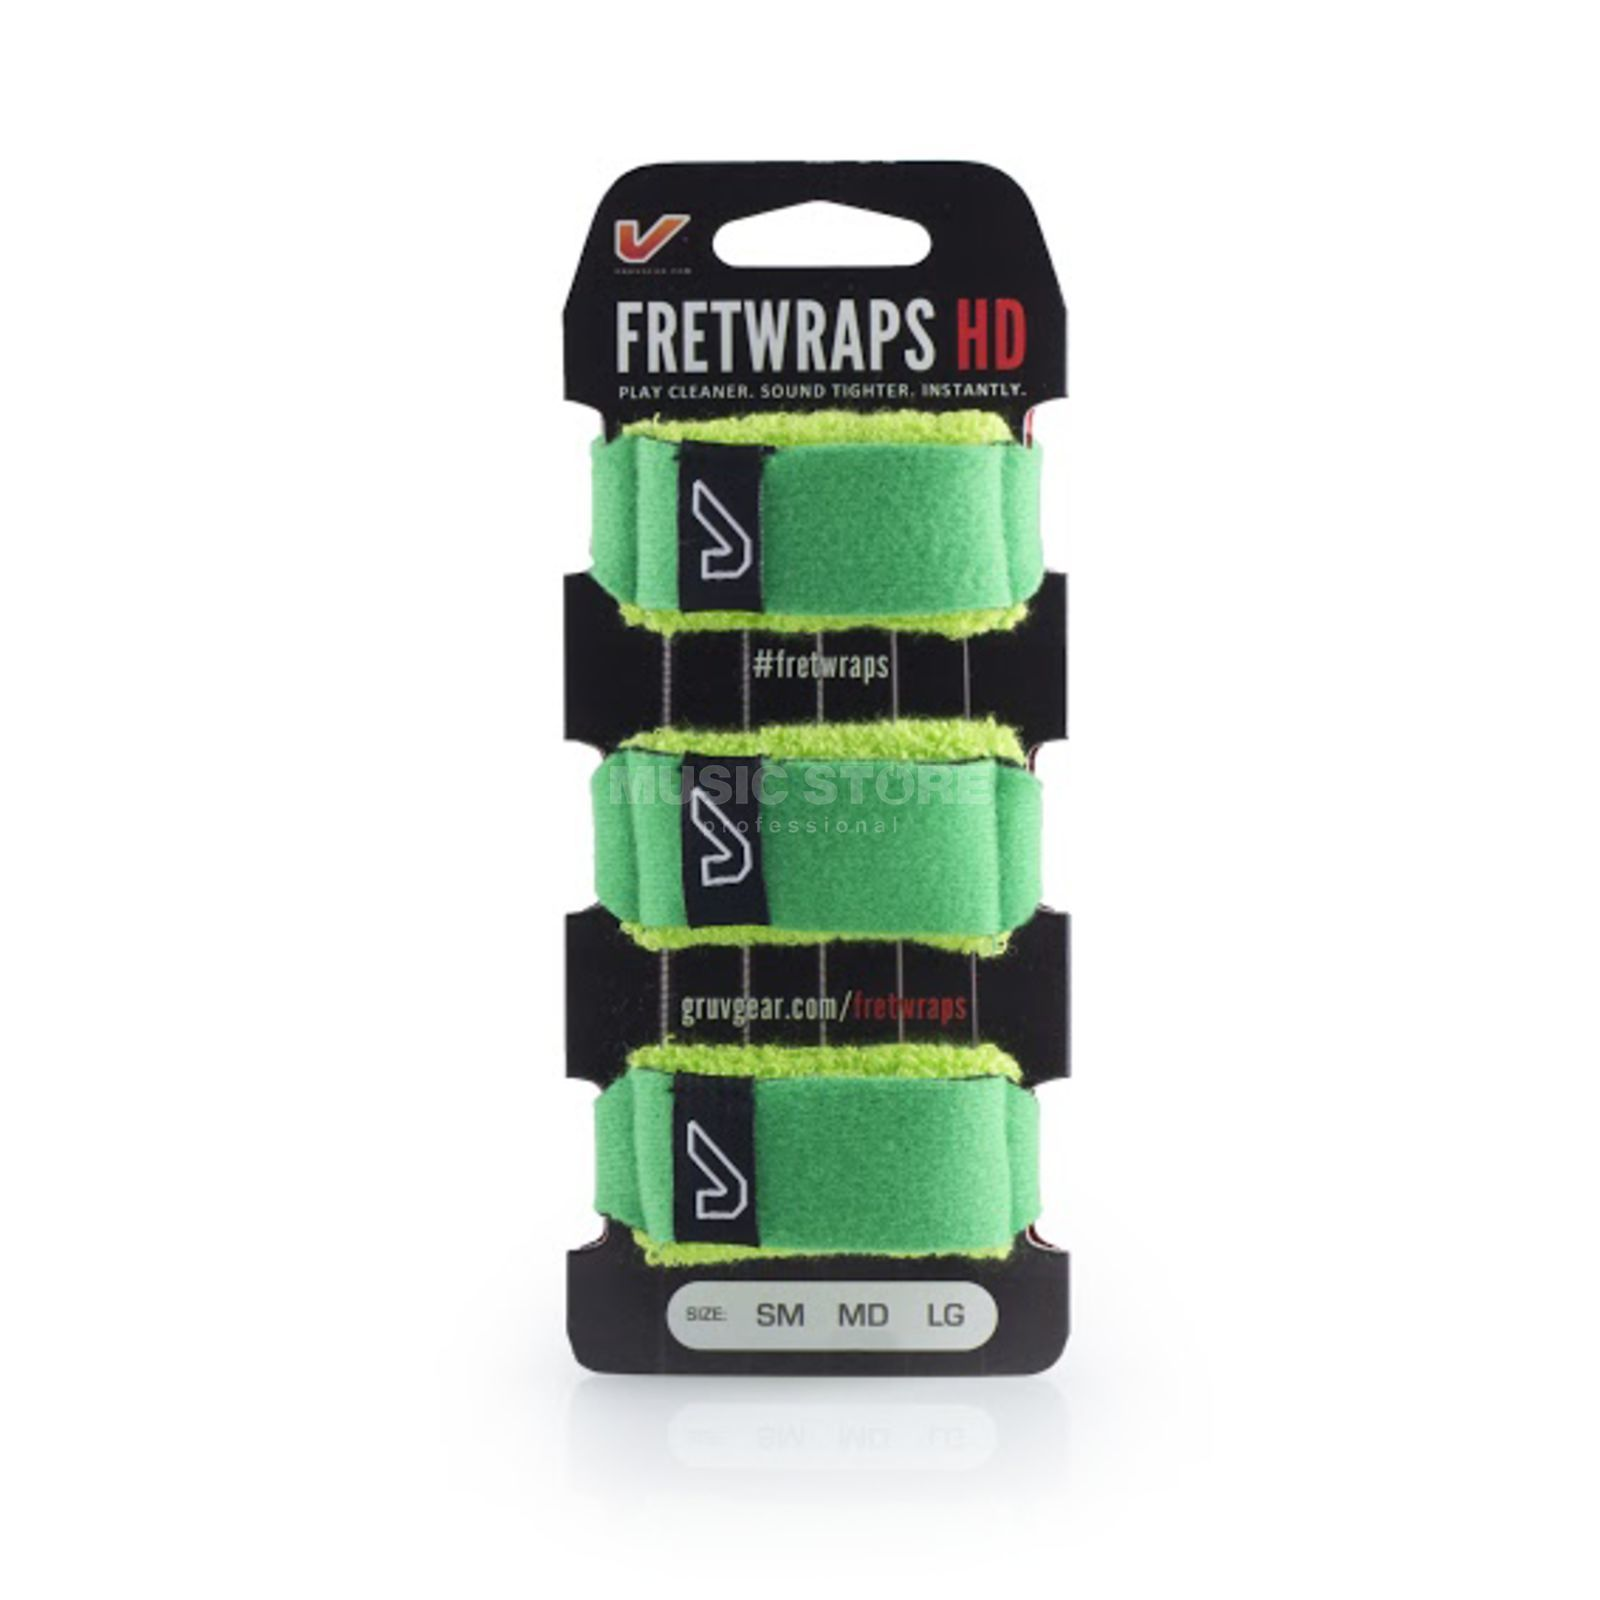 Gruv Gear Fret Wraps HD Leaf Green Medium, 3er Pack Product Image